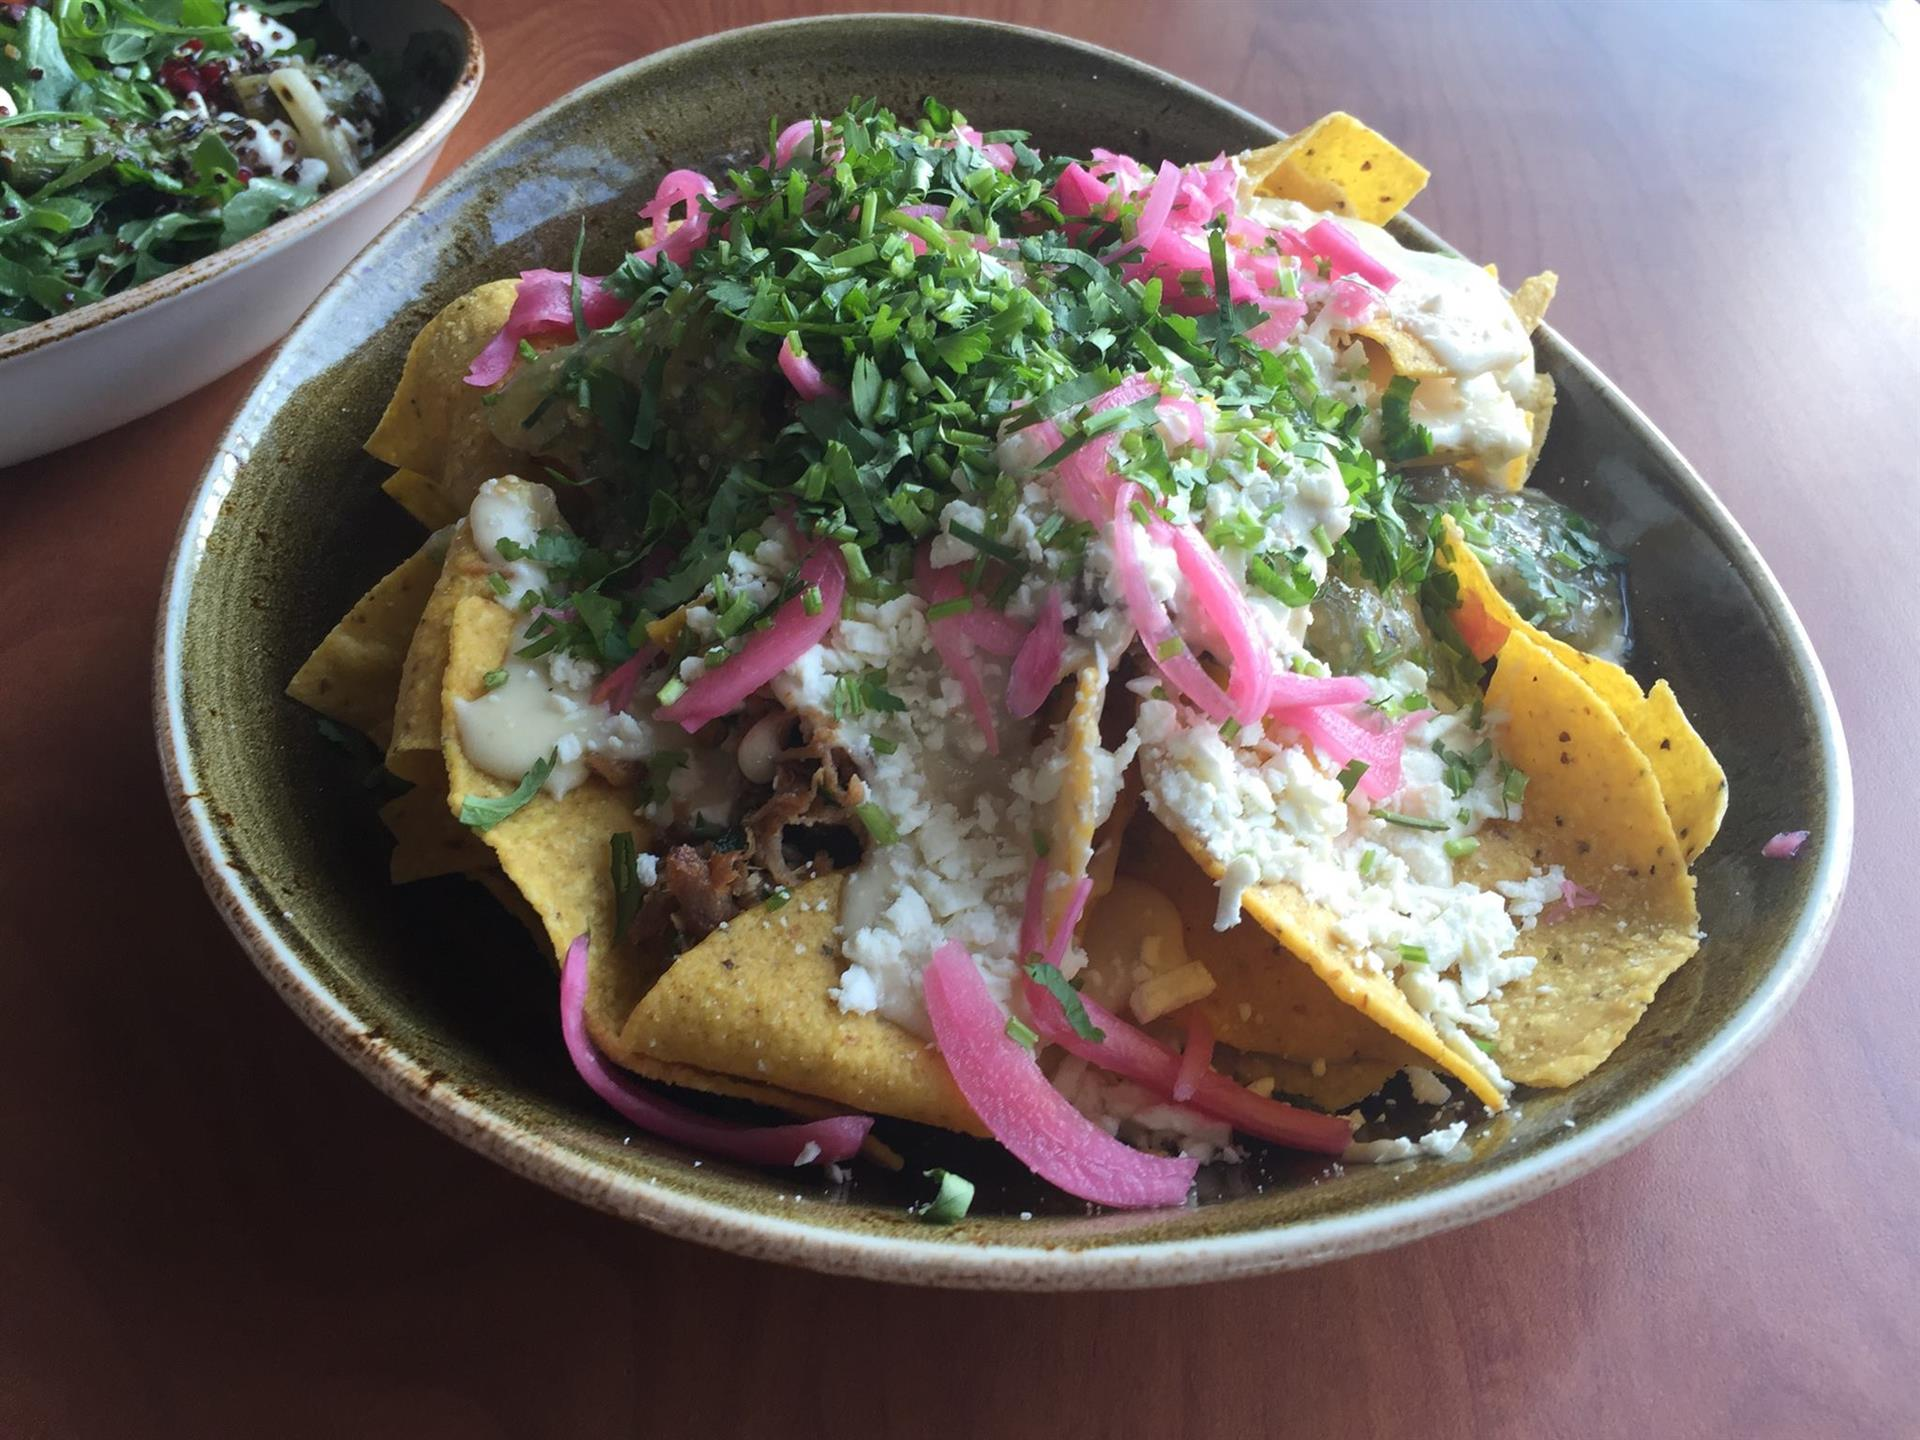 Nachos with cheese, pickled onions in a bowl